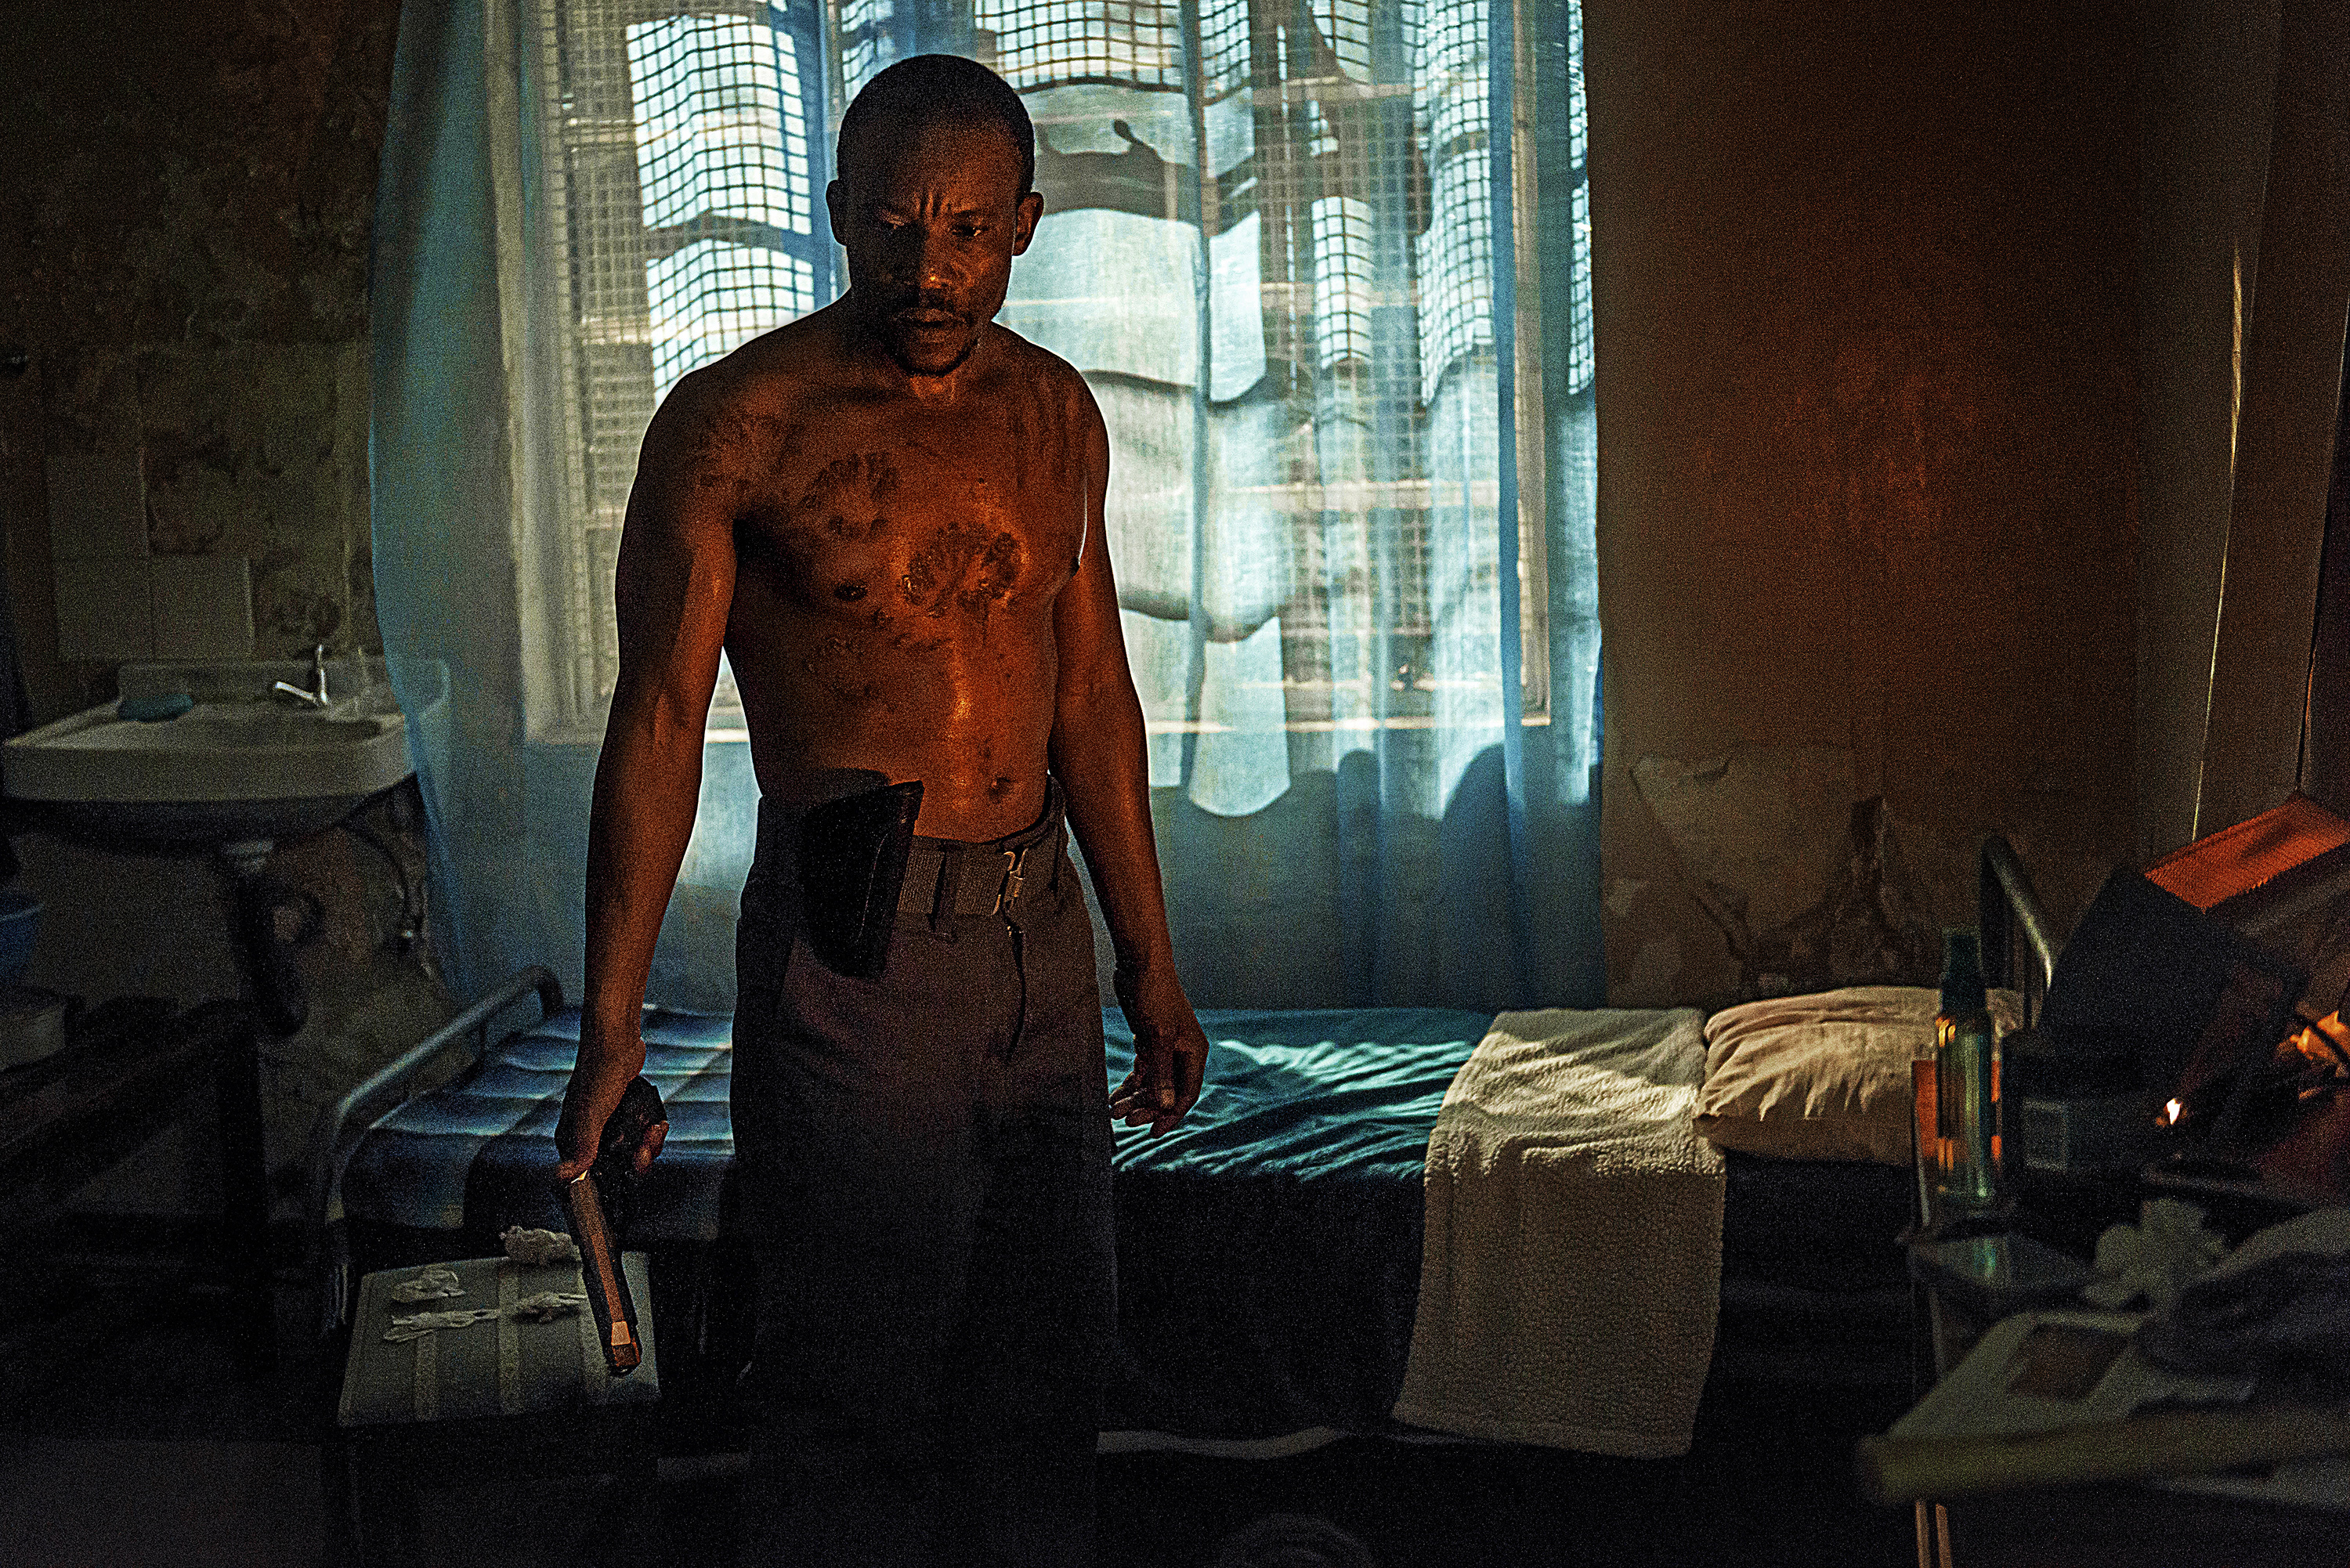 Mduduzi Mabaso in Five Fingers for Marseilles (2017)